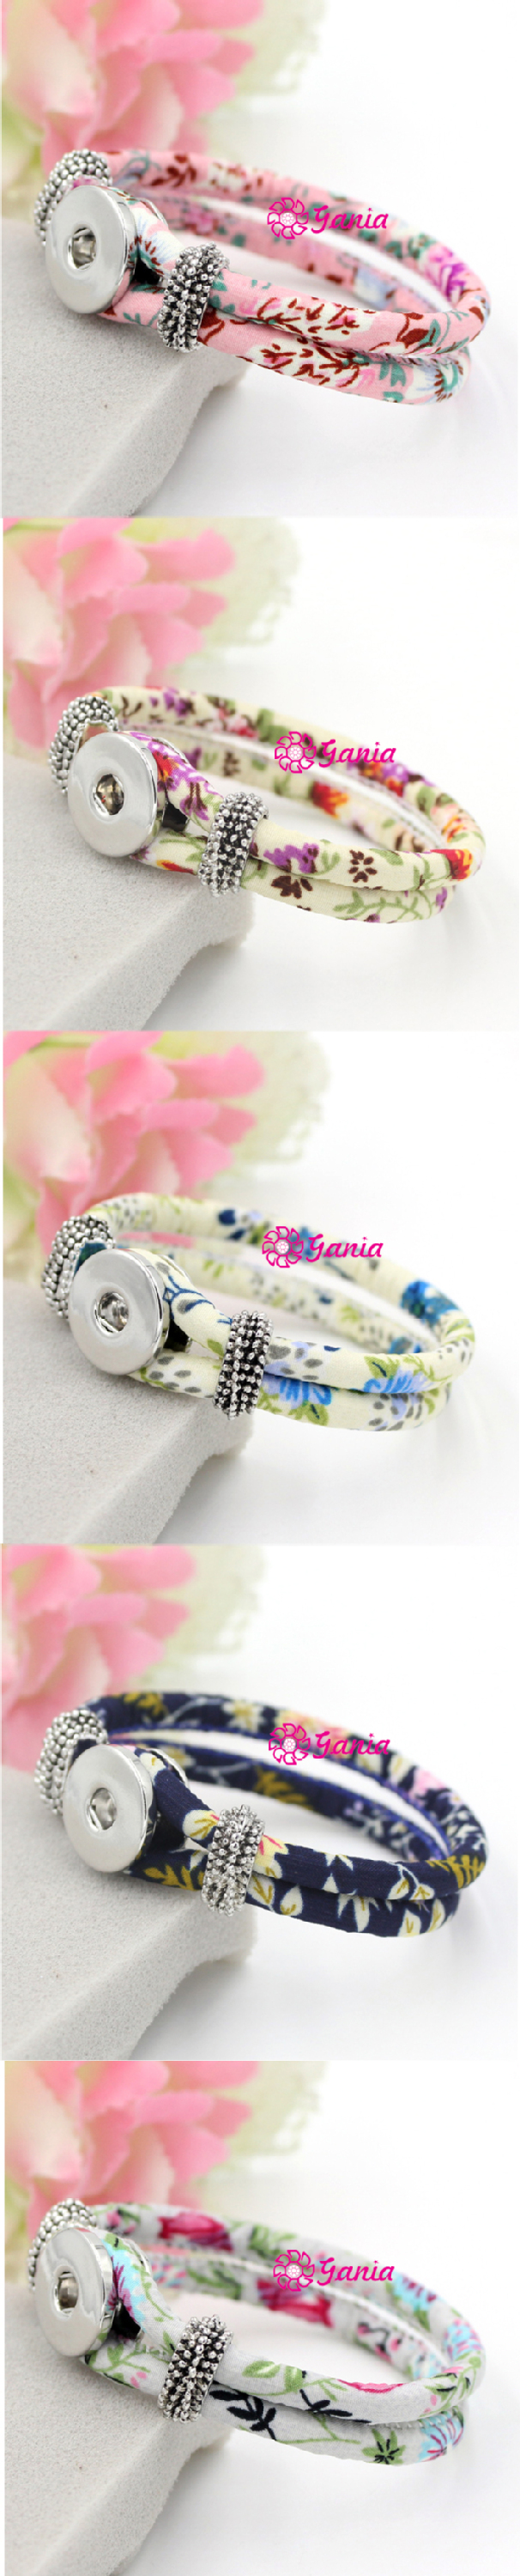 New Arrival Interchangeable Snap Jewelry Flower Printed Fabric Rope Wrap Snap Bracelets for DIY Buttons